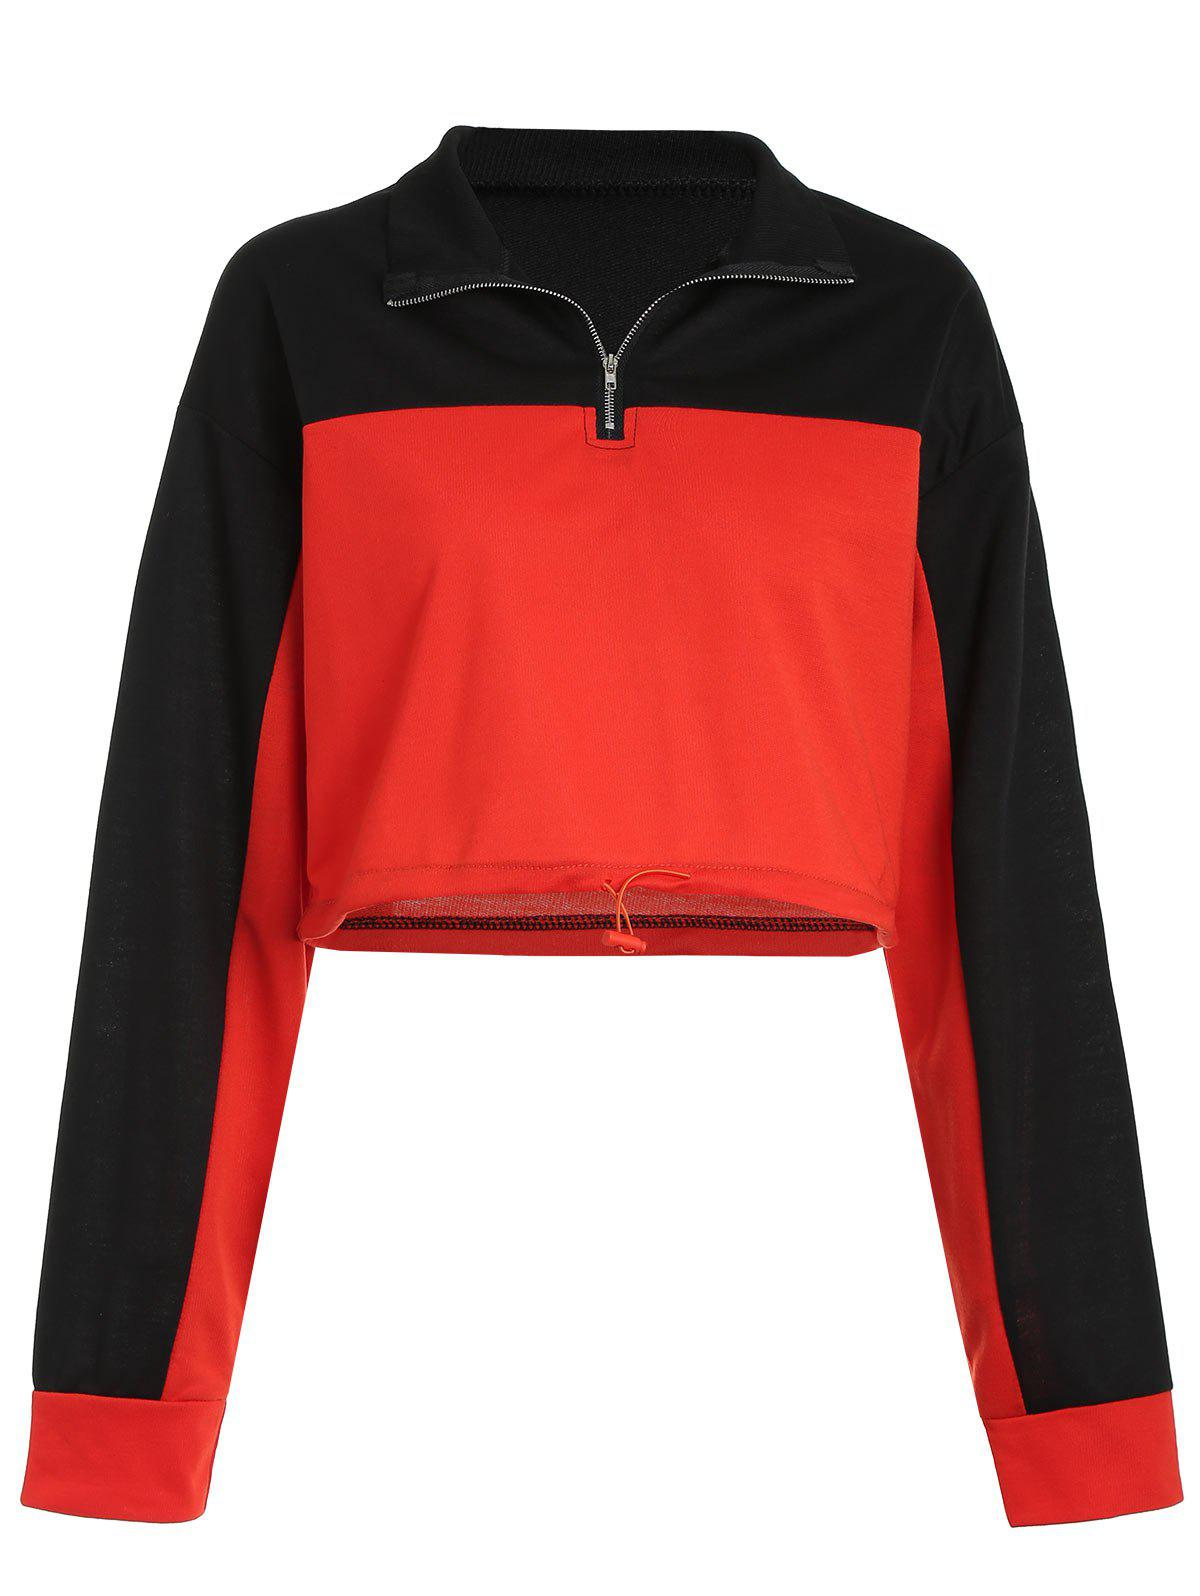 Short Contrast Sweatshirt with Half Zipper - multicolor M